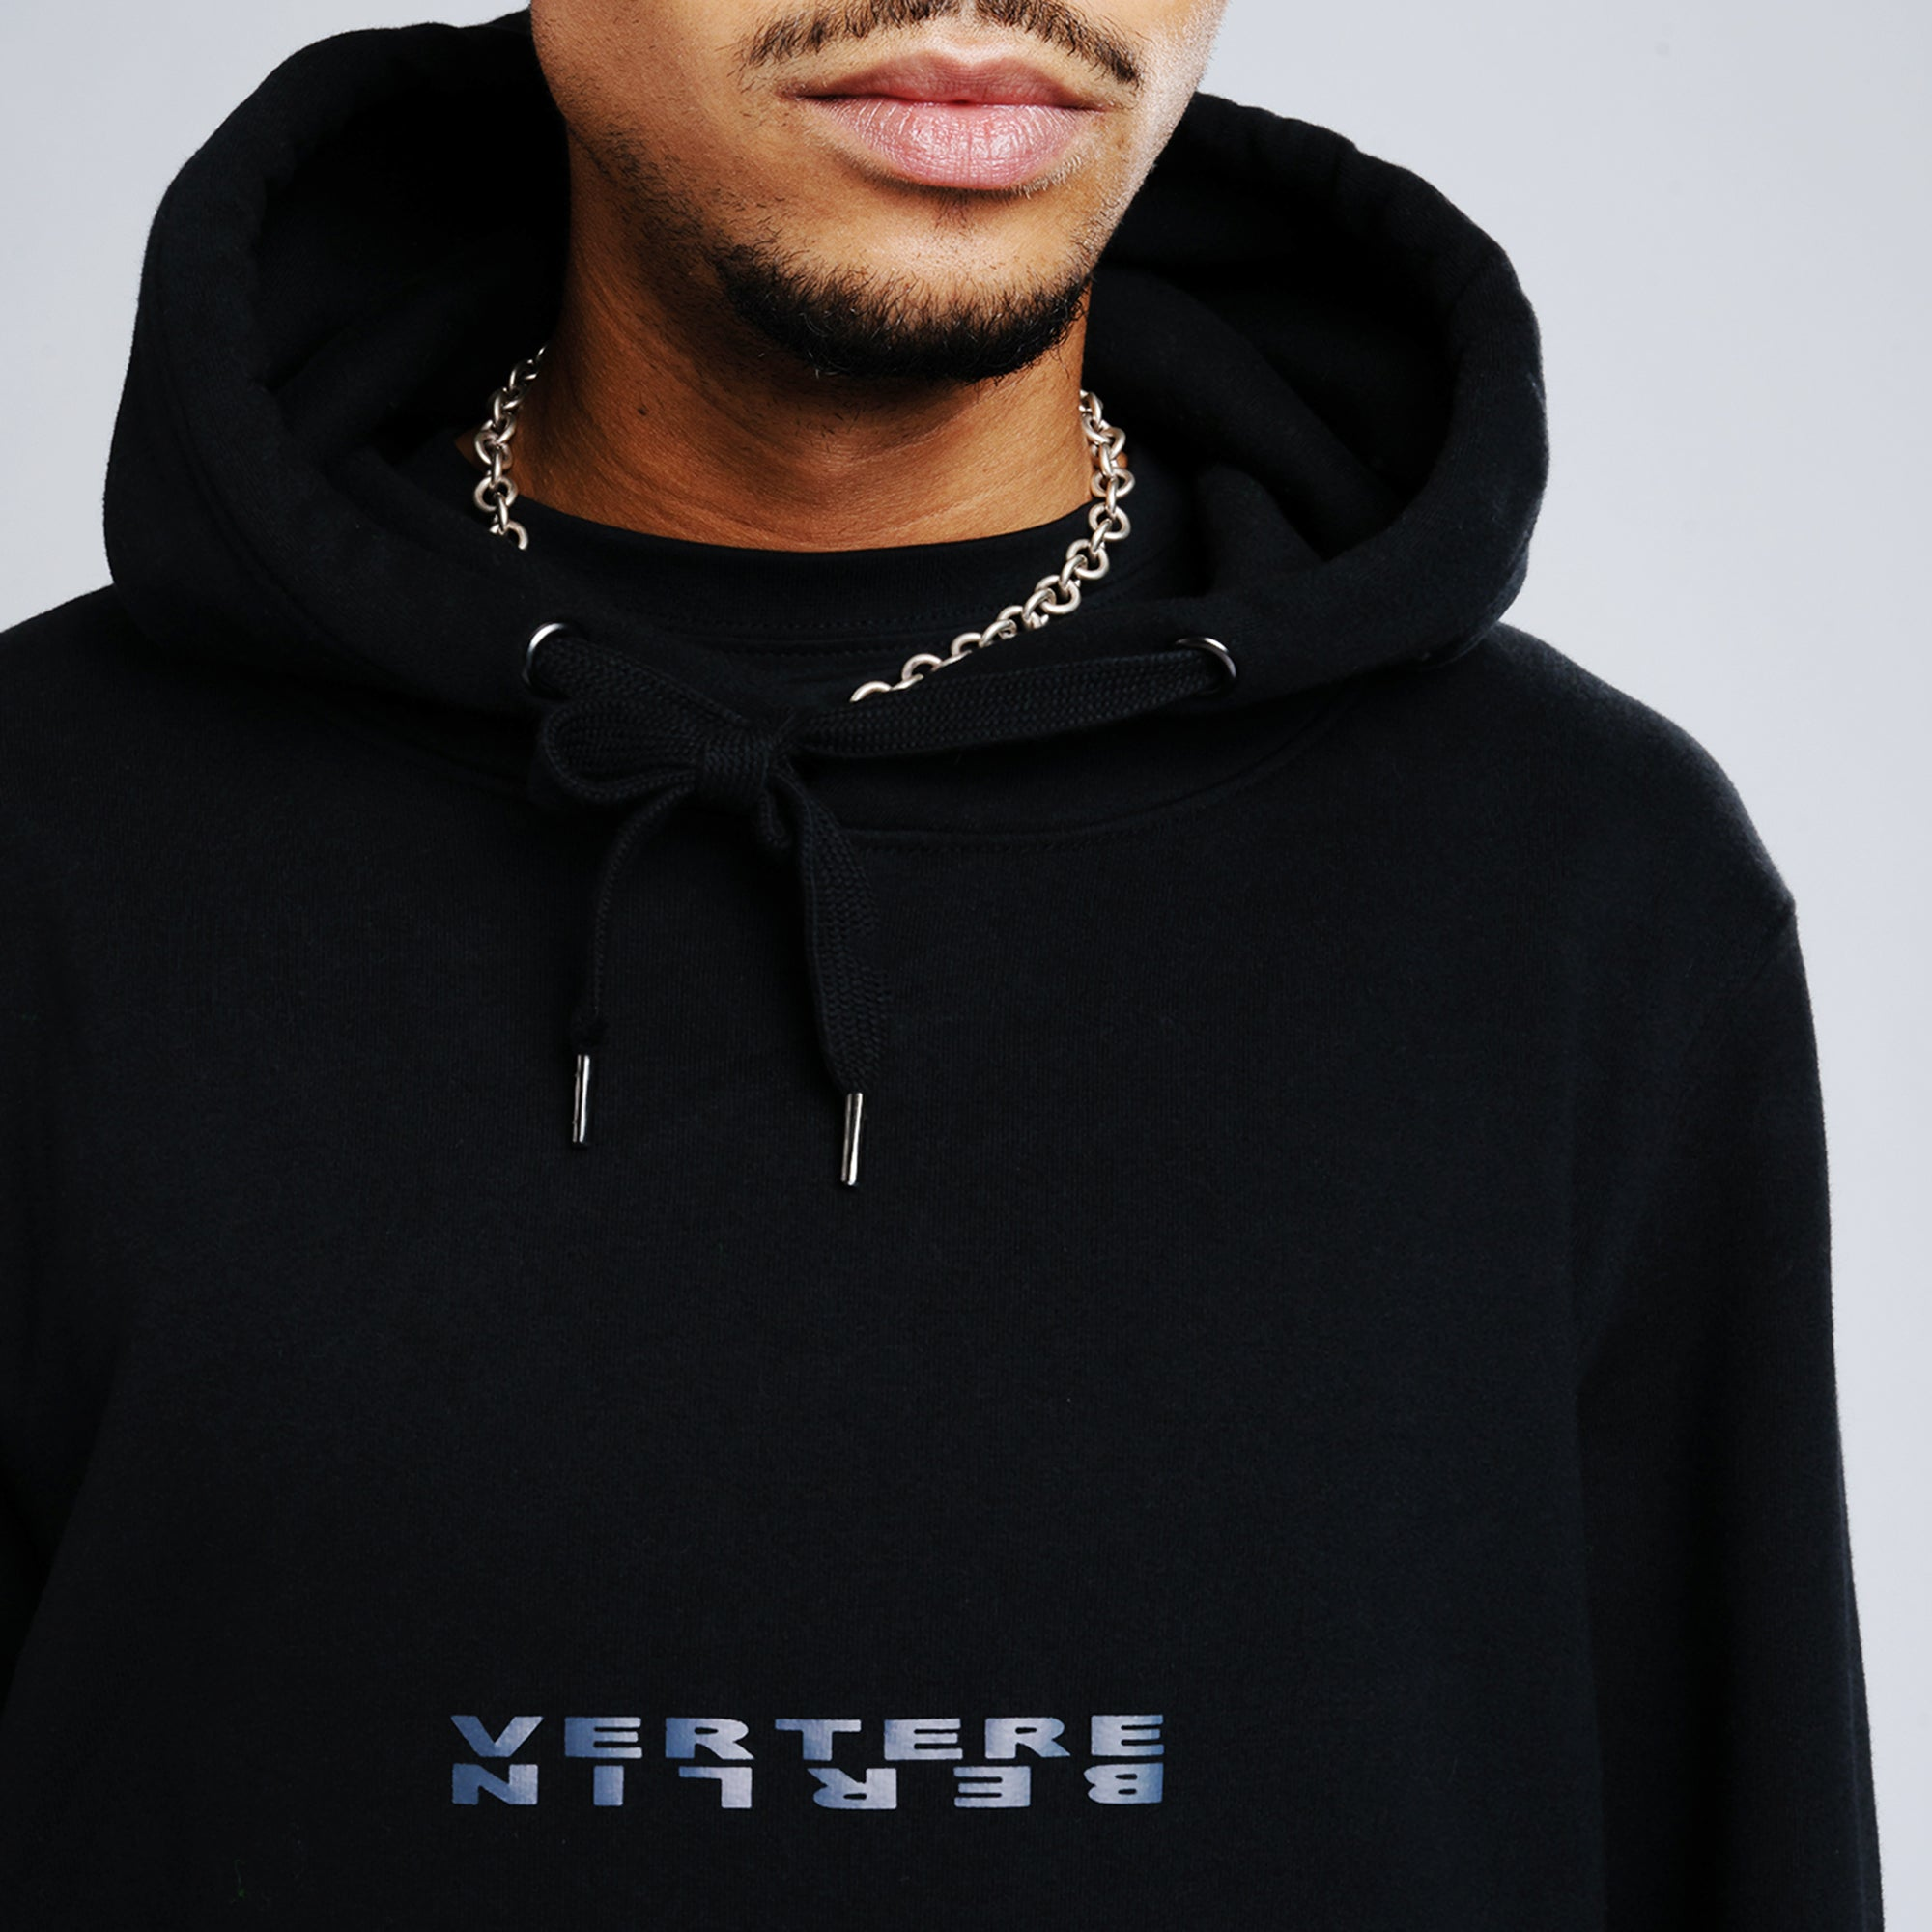 STRICTLY DANCEFLOOR BUSINESS HOODIE - BLACK